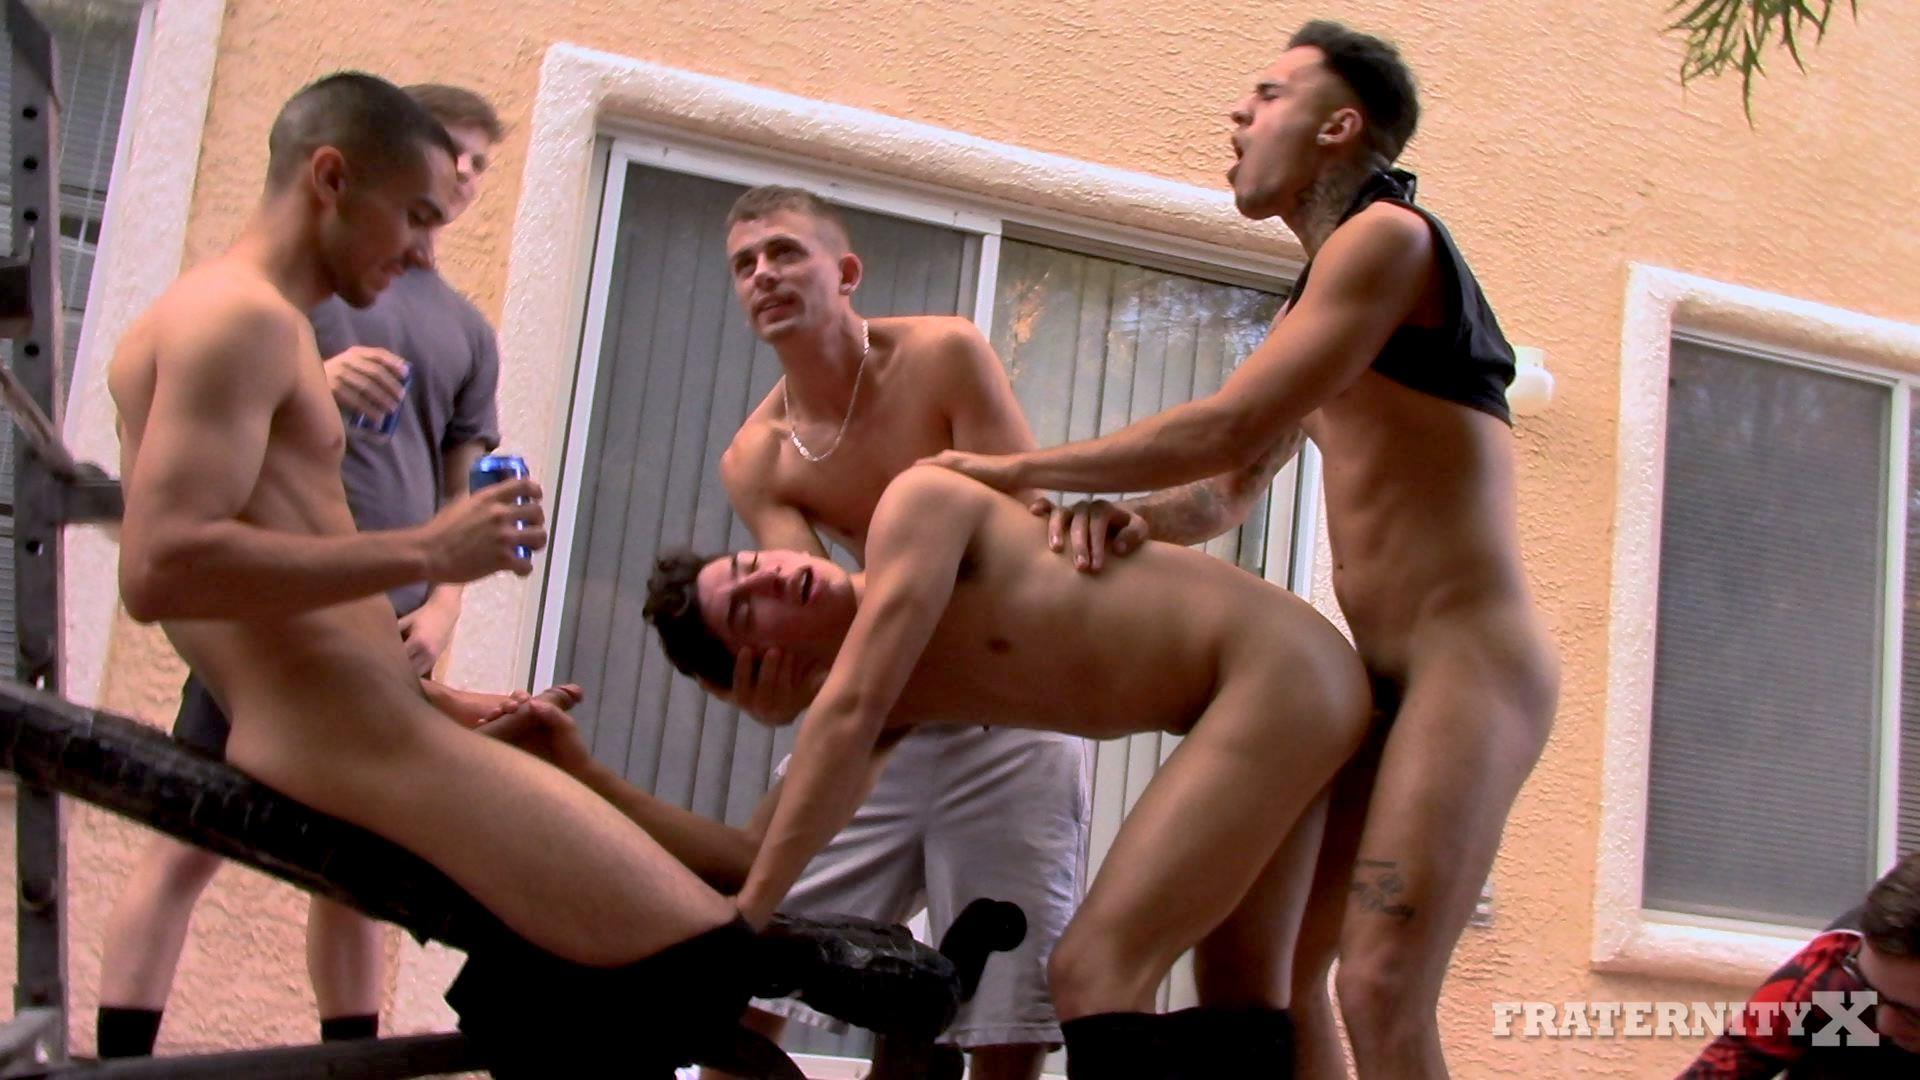 Fraternity-X-Naked-Frat-Boys-Fucking-Bareback-College-Cocks-09 Fraternity Boy Gets Bareback Fucked In The Ass By His Frat Brothers At New Years Eve Party